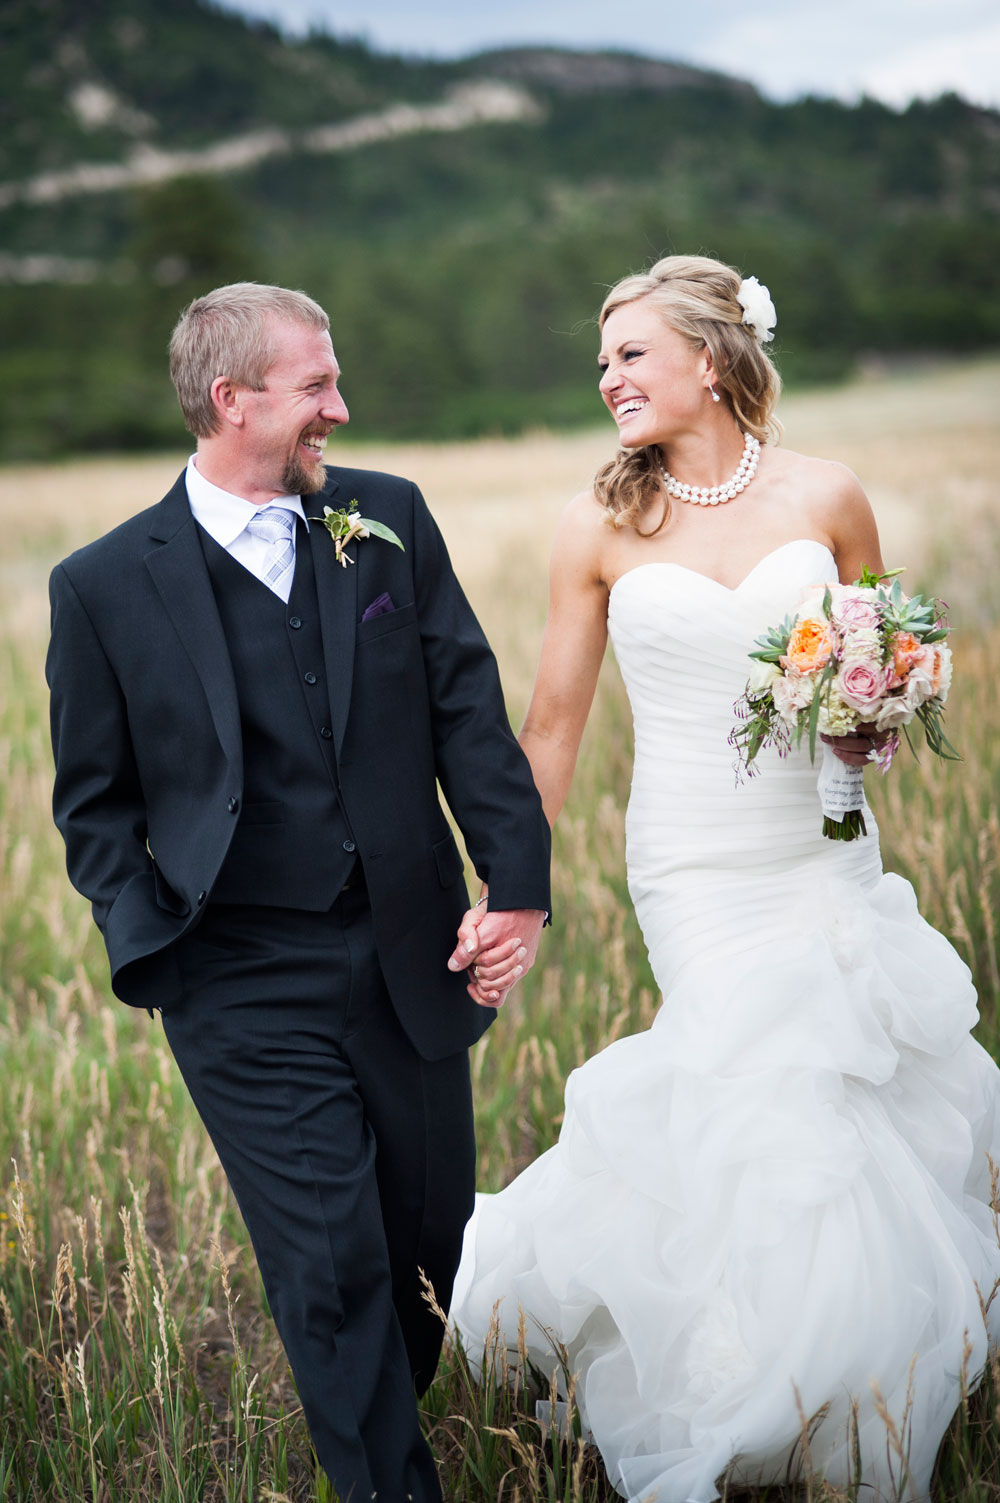 Rocky Mountain Destination Wedding Colorado - Luxe Mountain Weddings